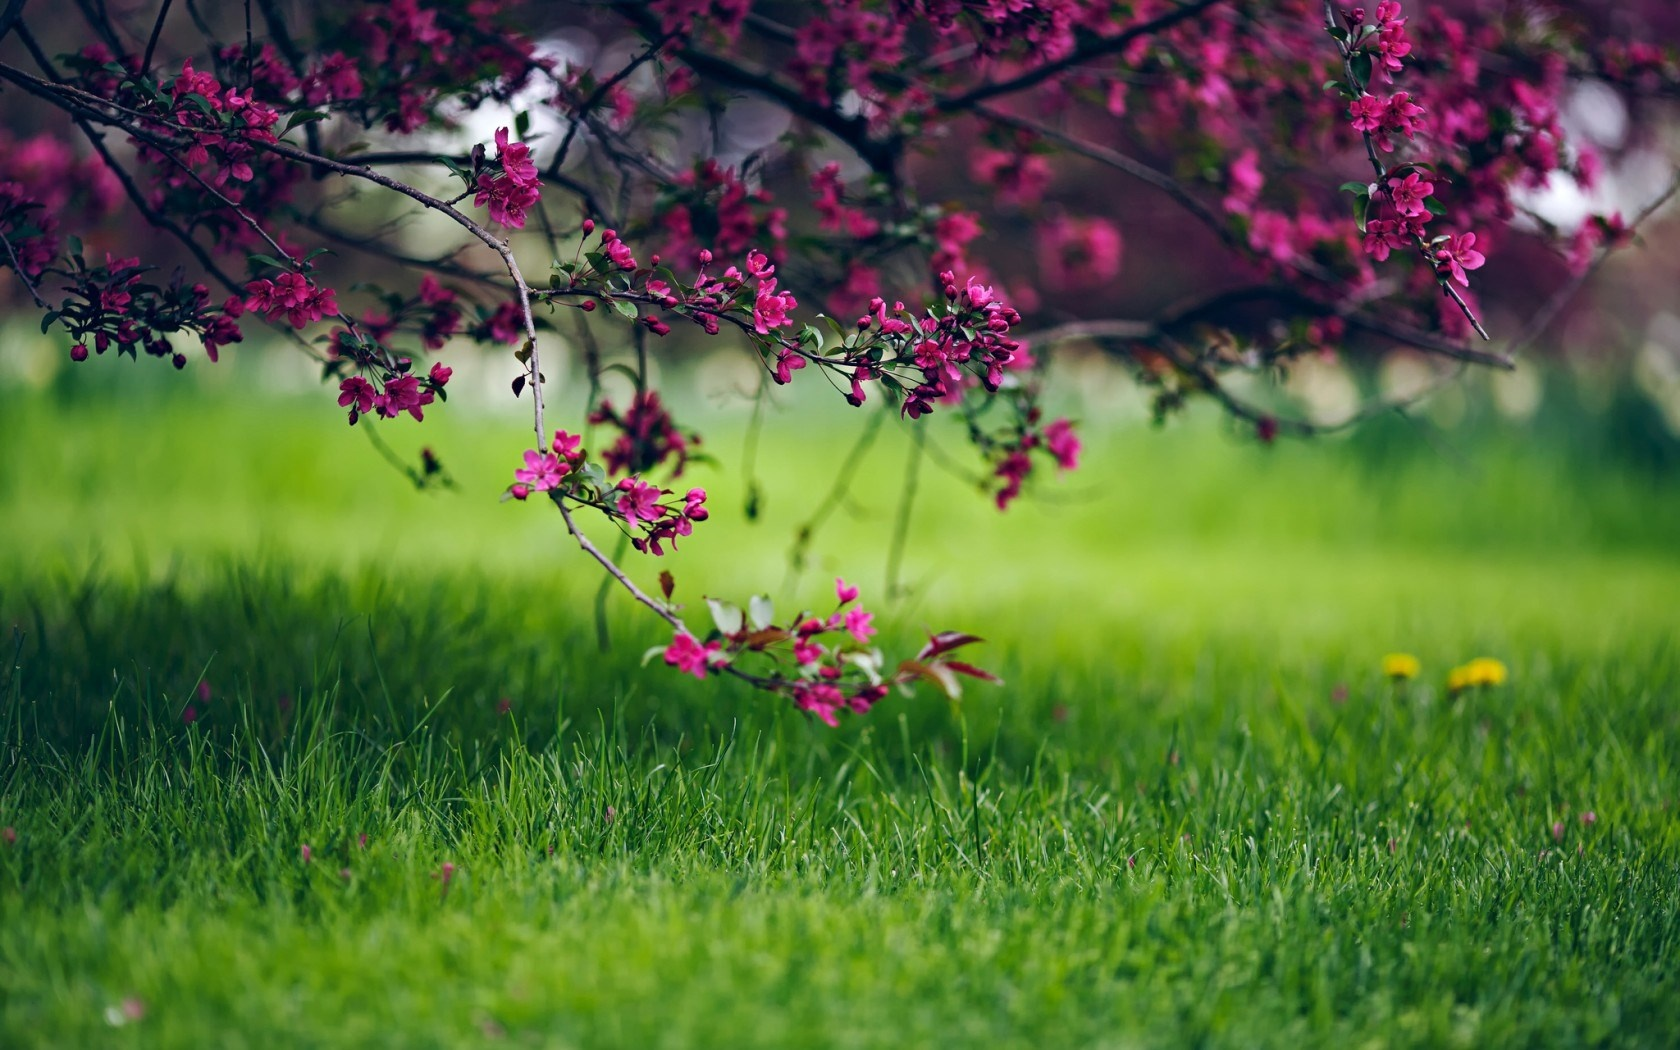 Spring Grass And Flowers Nature Wallpapers